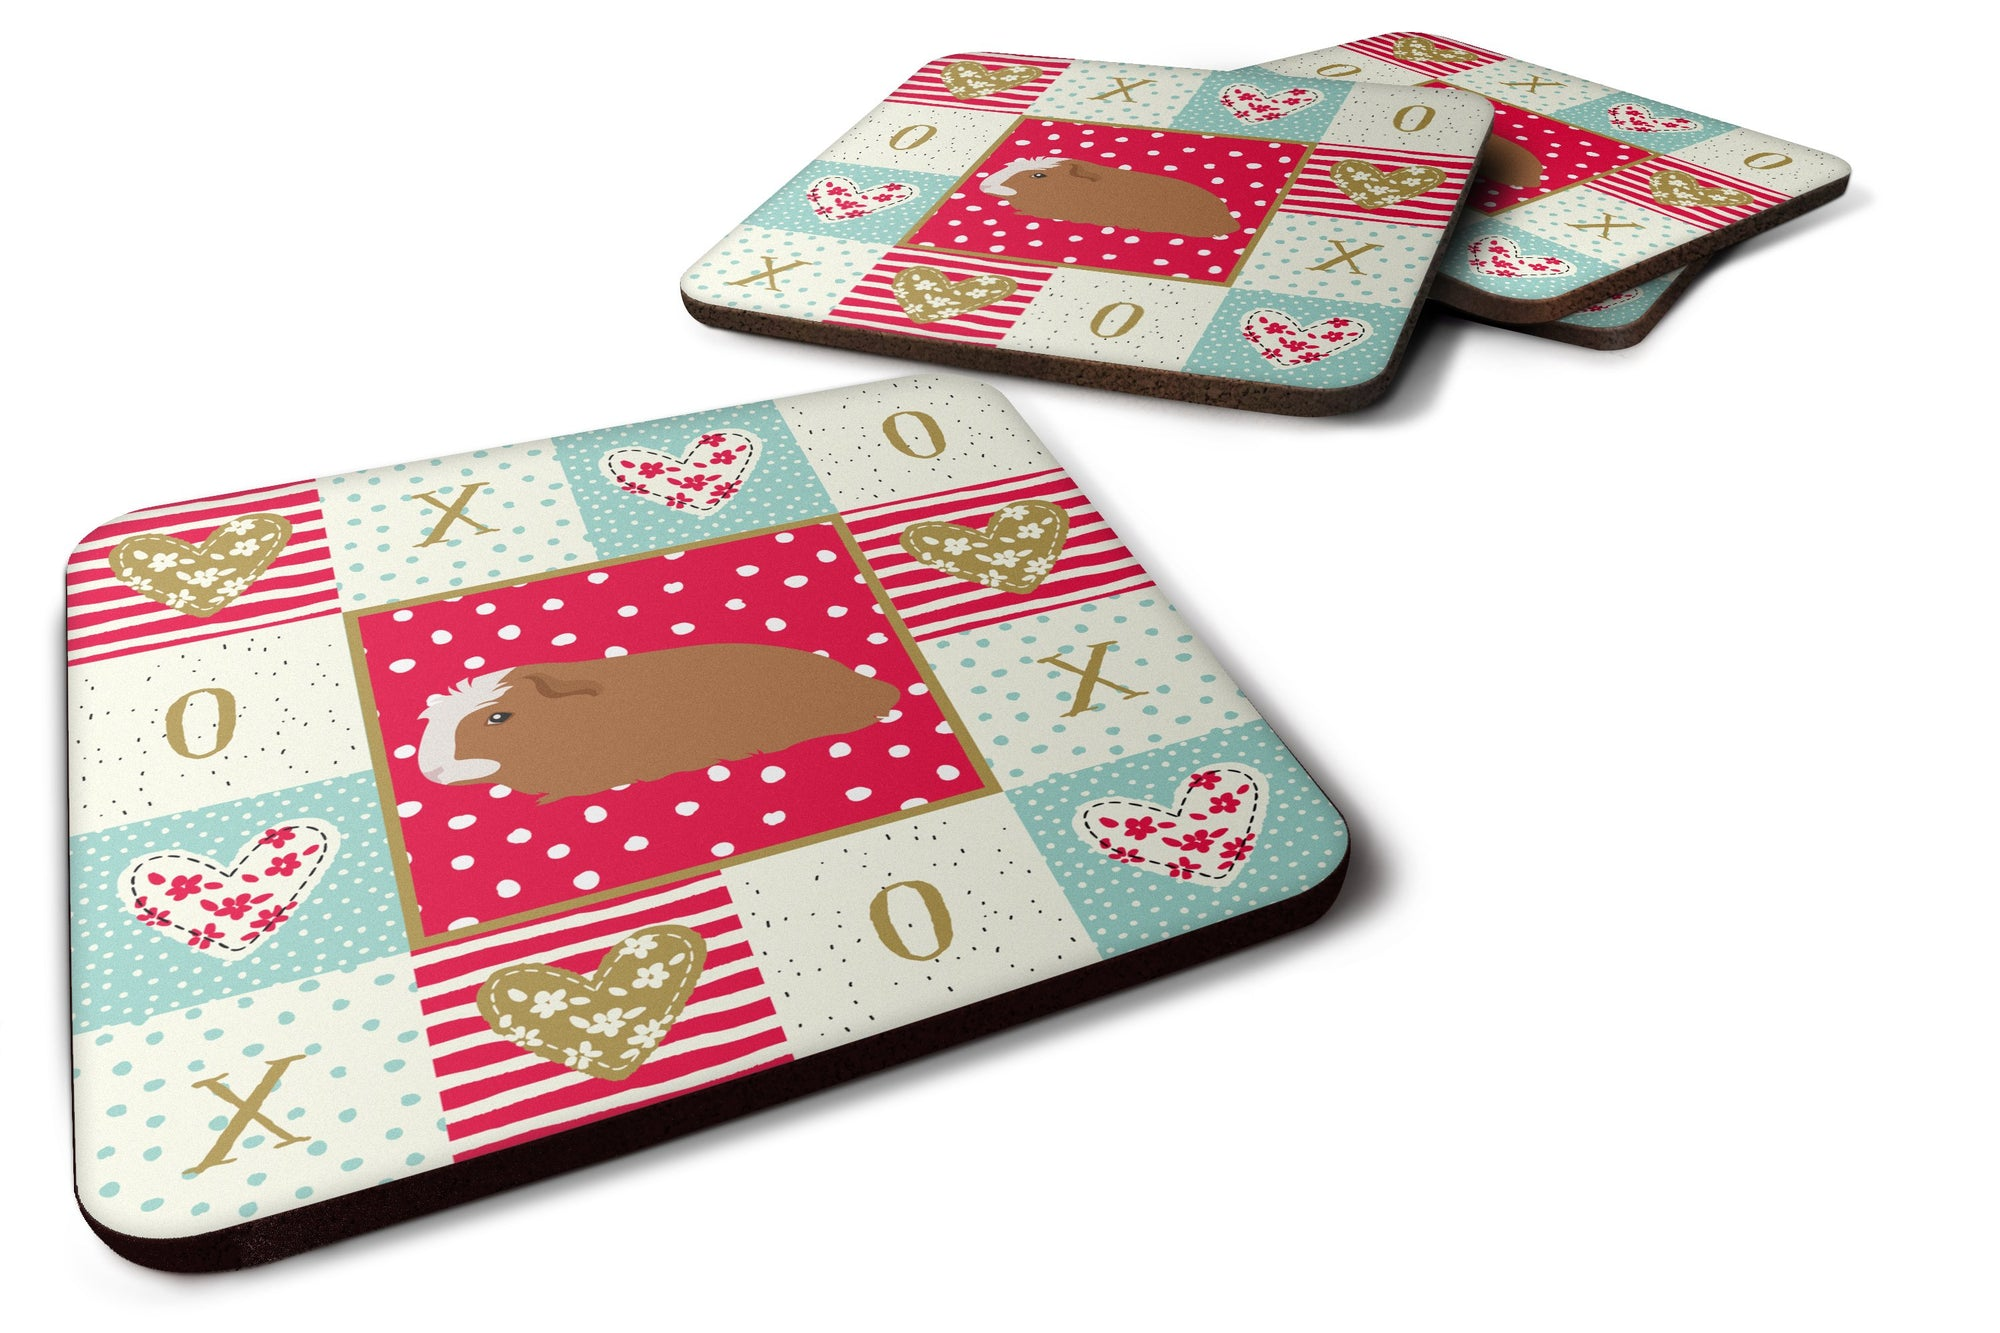 Set of 4 Crested Guinea Pig Love Foam Coasters Set of 4 CK5428FC by Caroline's Treasures